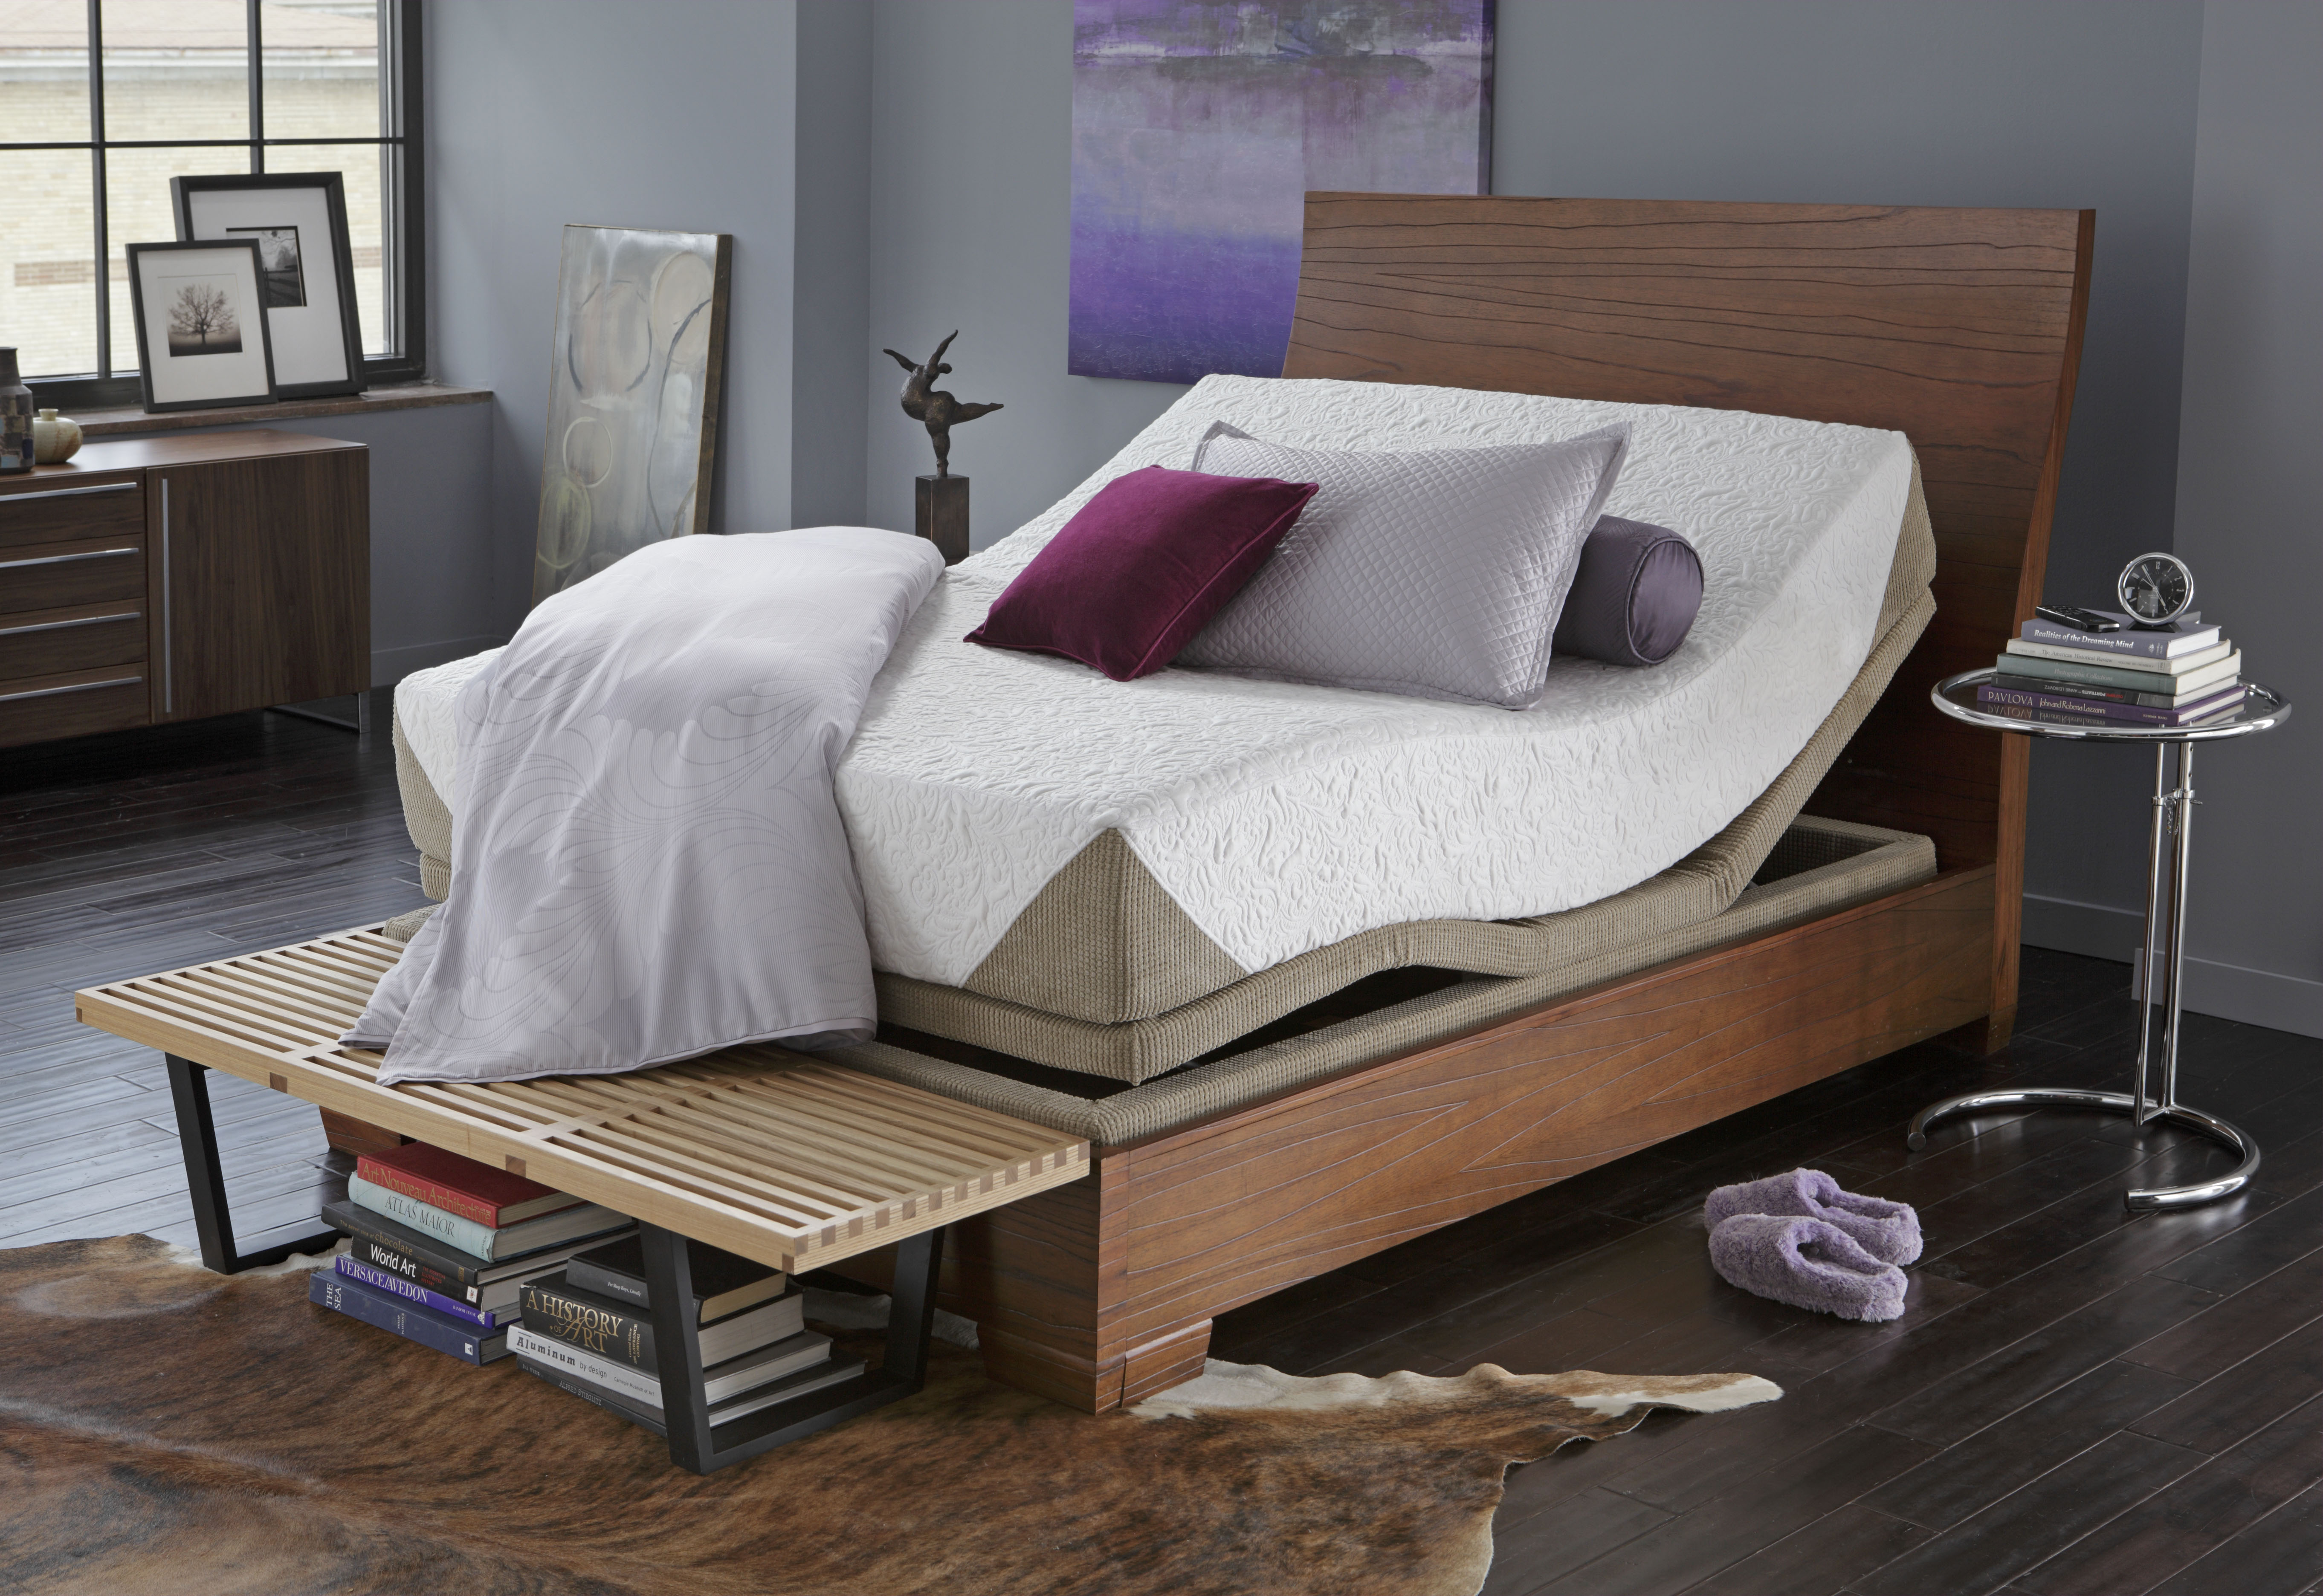 Serta Icomfort Reviews >> Serta iComfort - Mattress Reviews - GoodBed.com